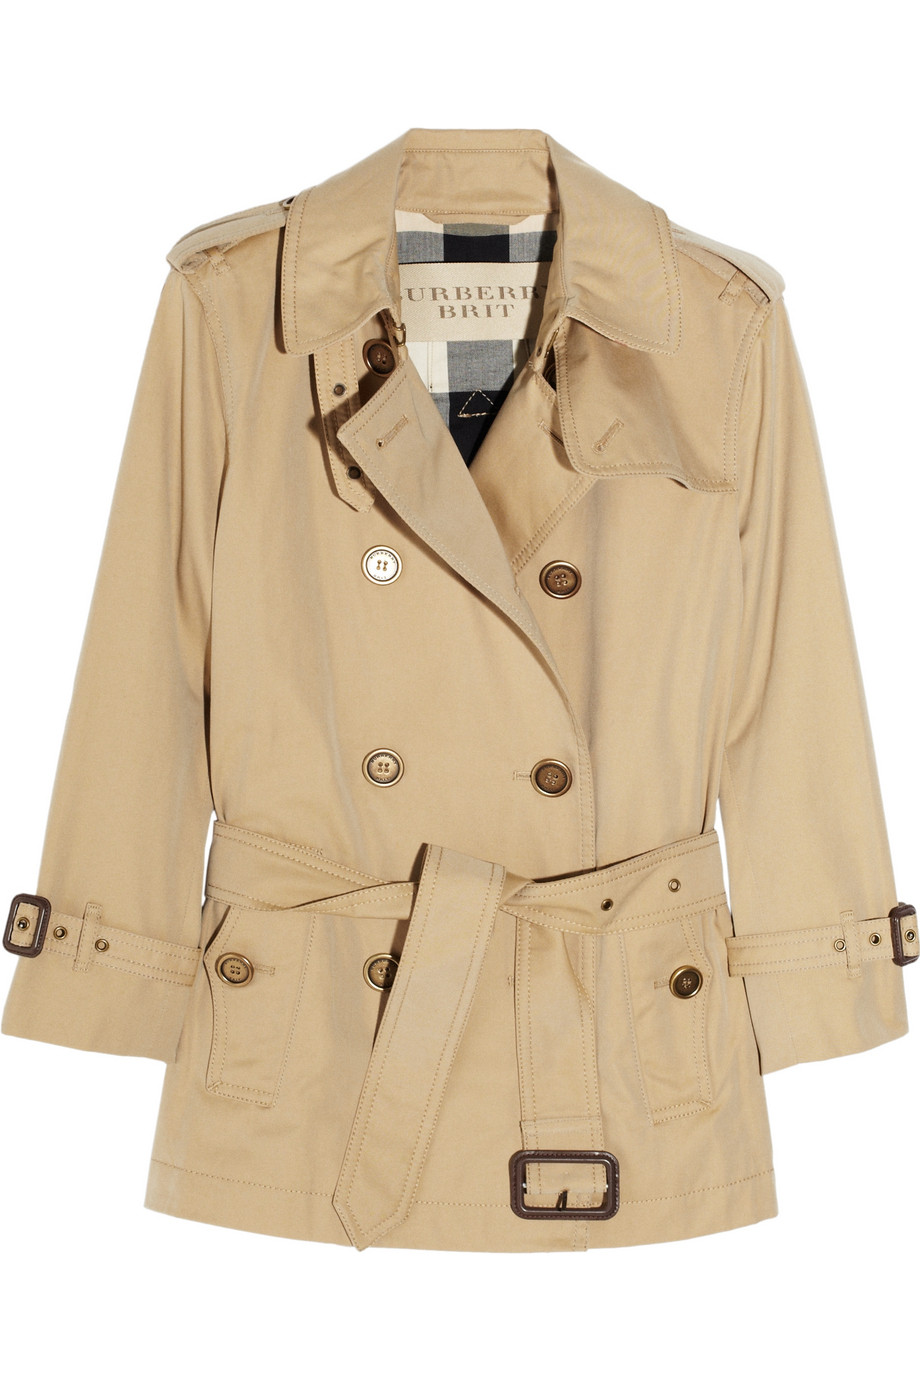 Burberry Brit Short Trench Coat In Beige